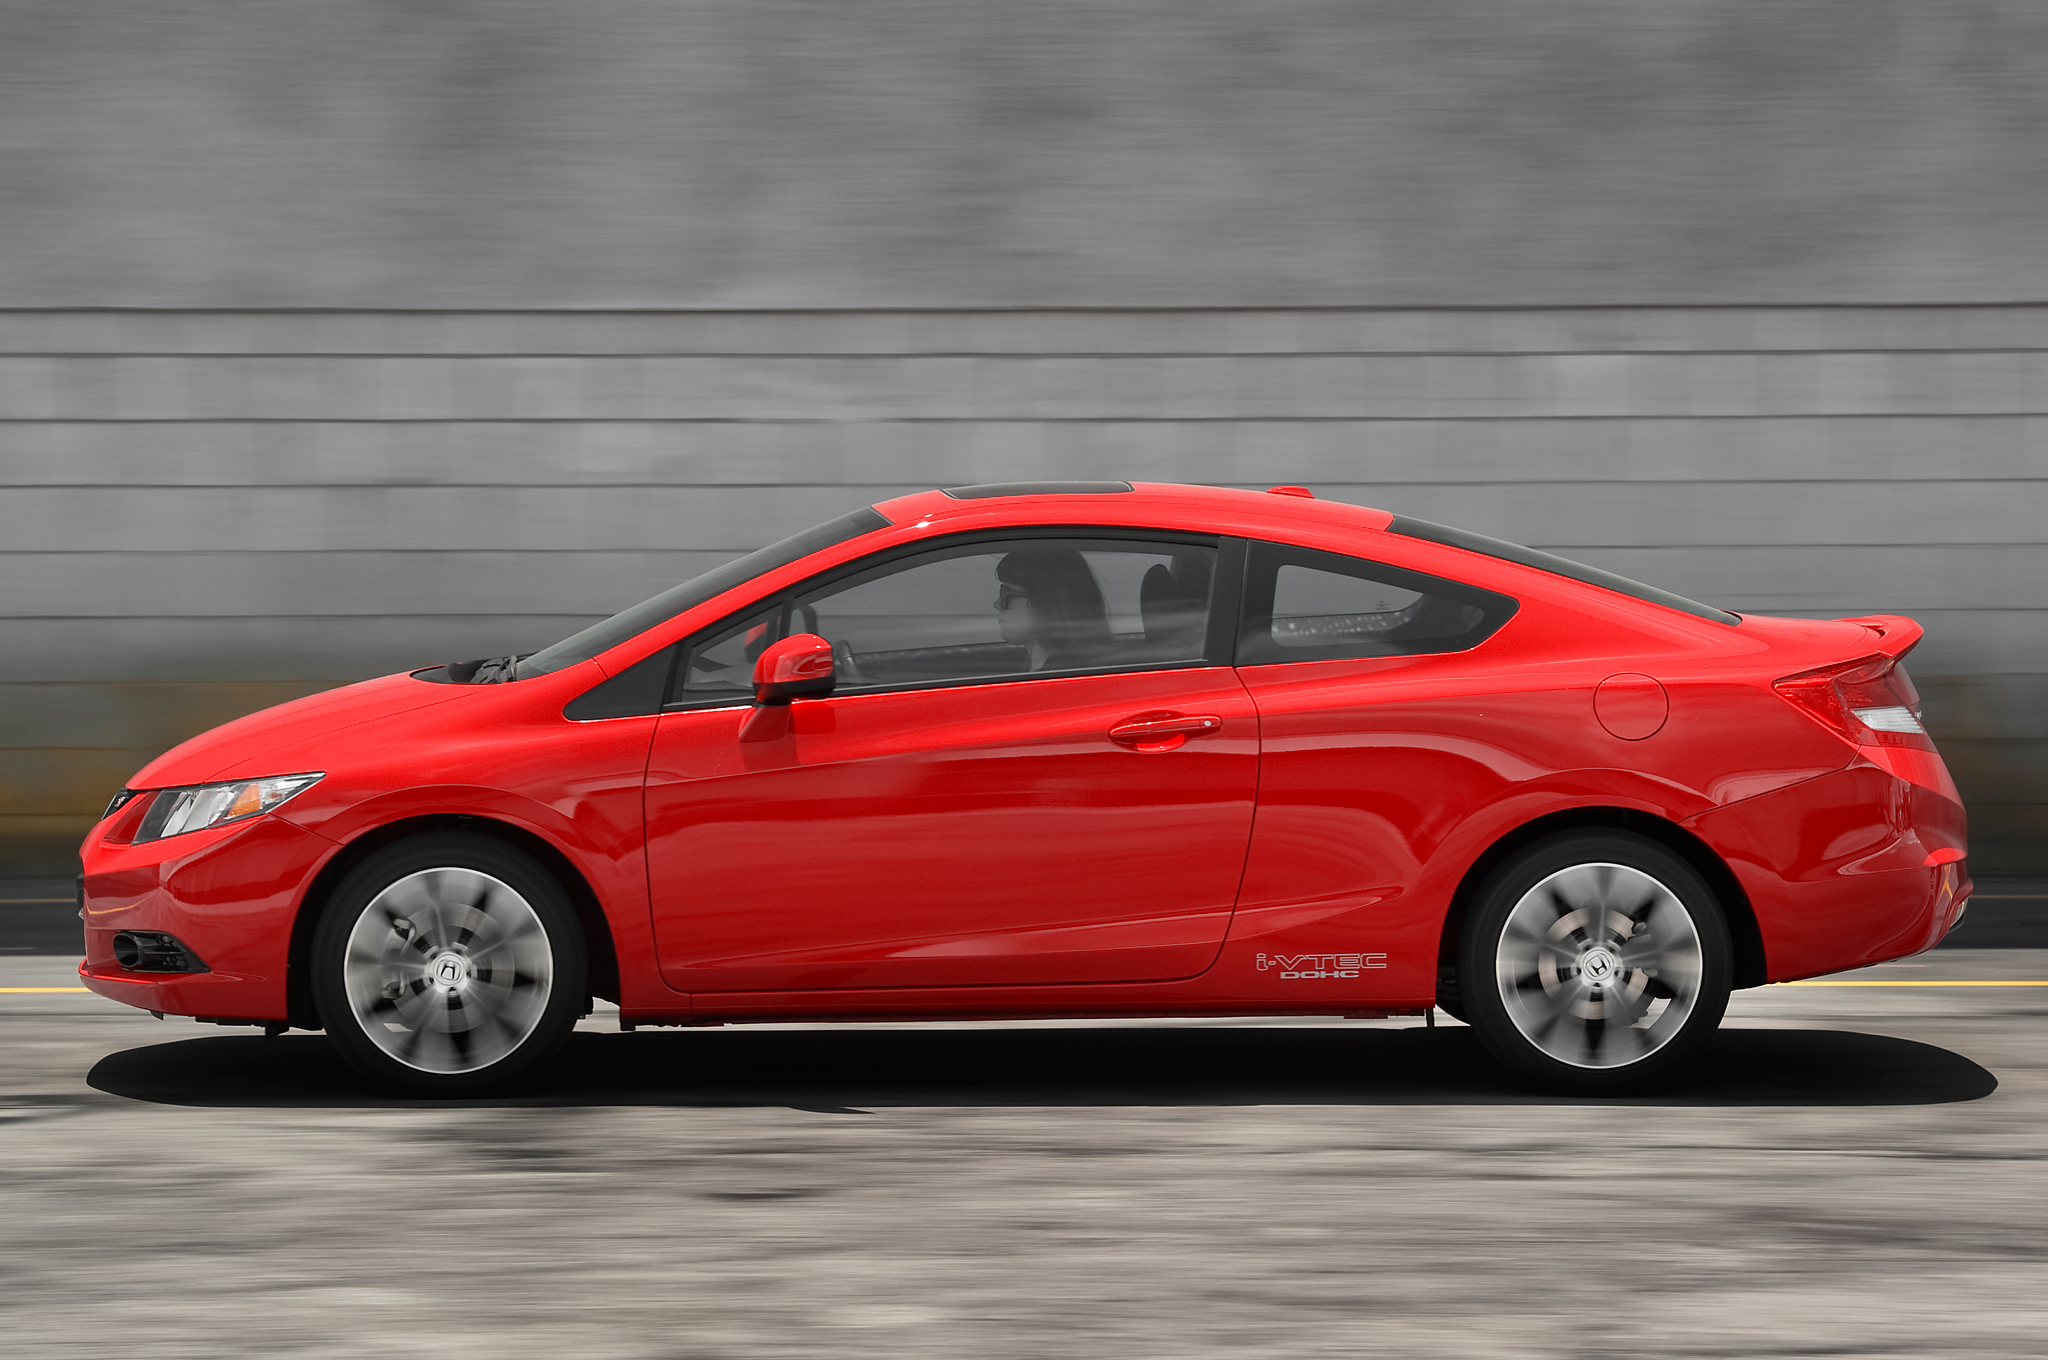 2013 Honda Civic SI side in motion?impolicy\\\\\\\=entryimage fuse box diagram honda accord sport 2013 detailed schematics diagram